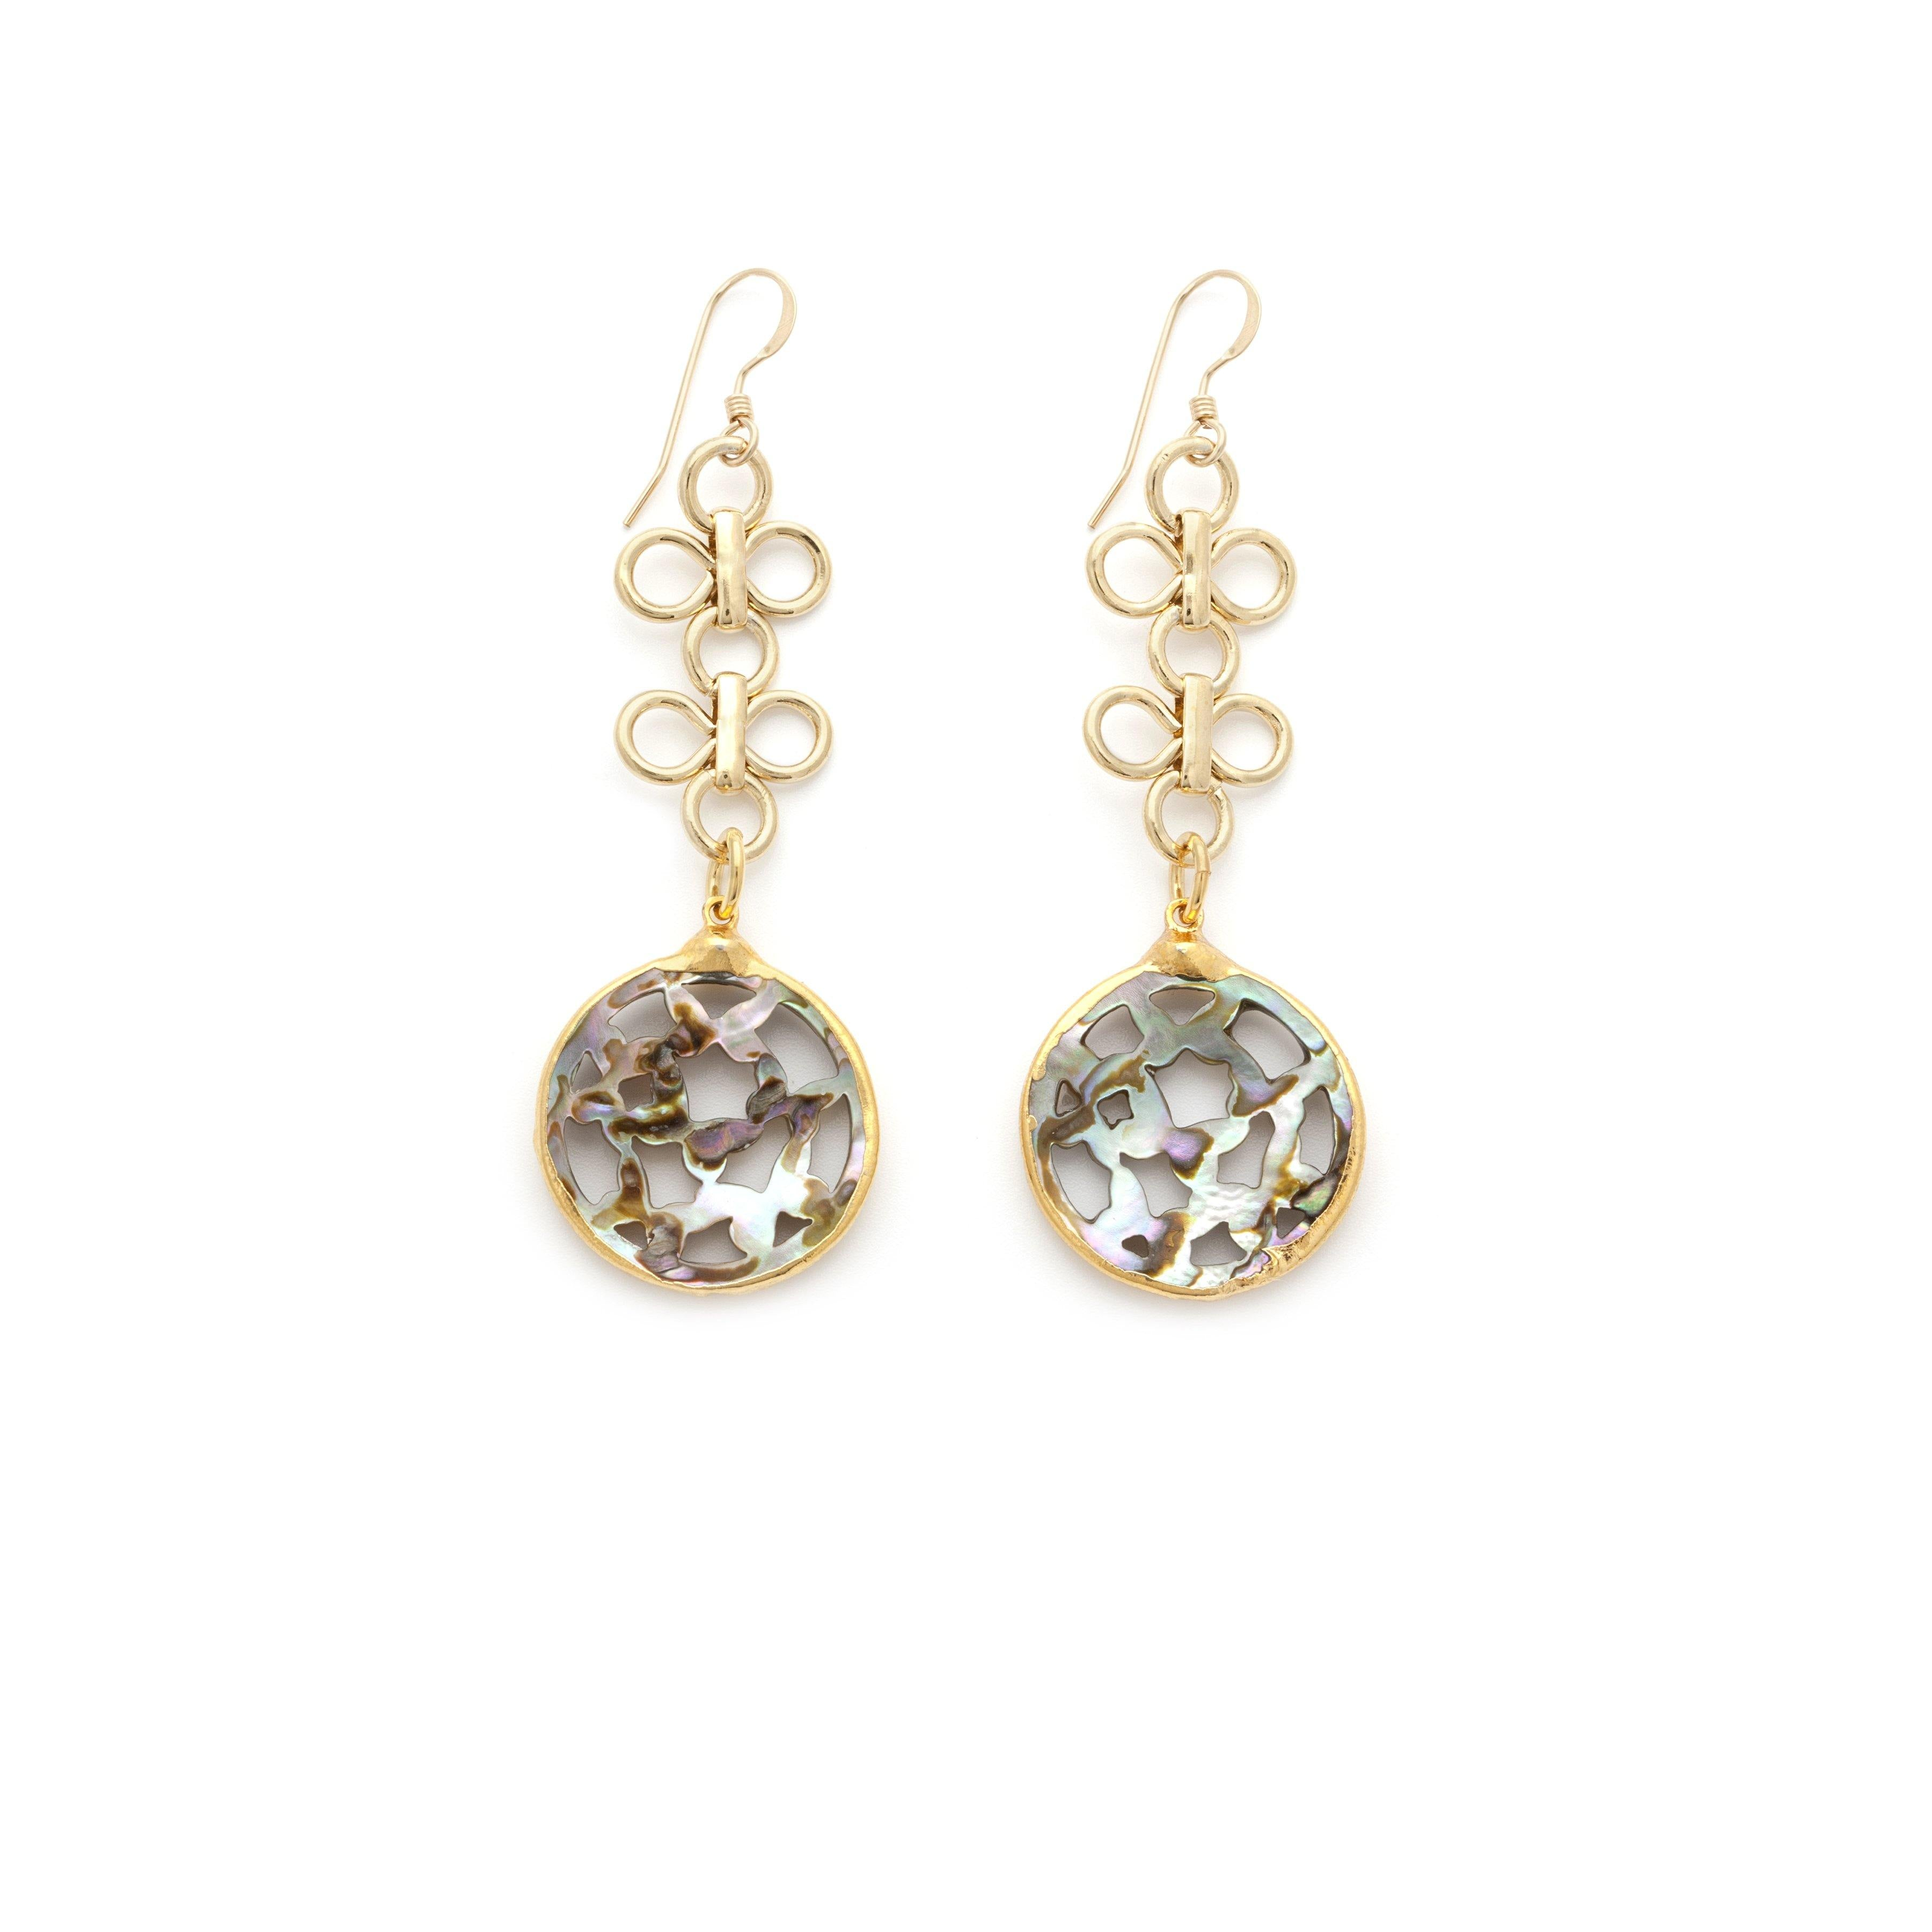 Mother Of Pearl Earrings - Irit Sorokin Designs Canadian handmade jewelry